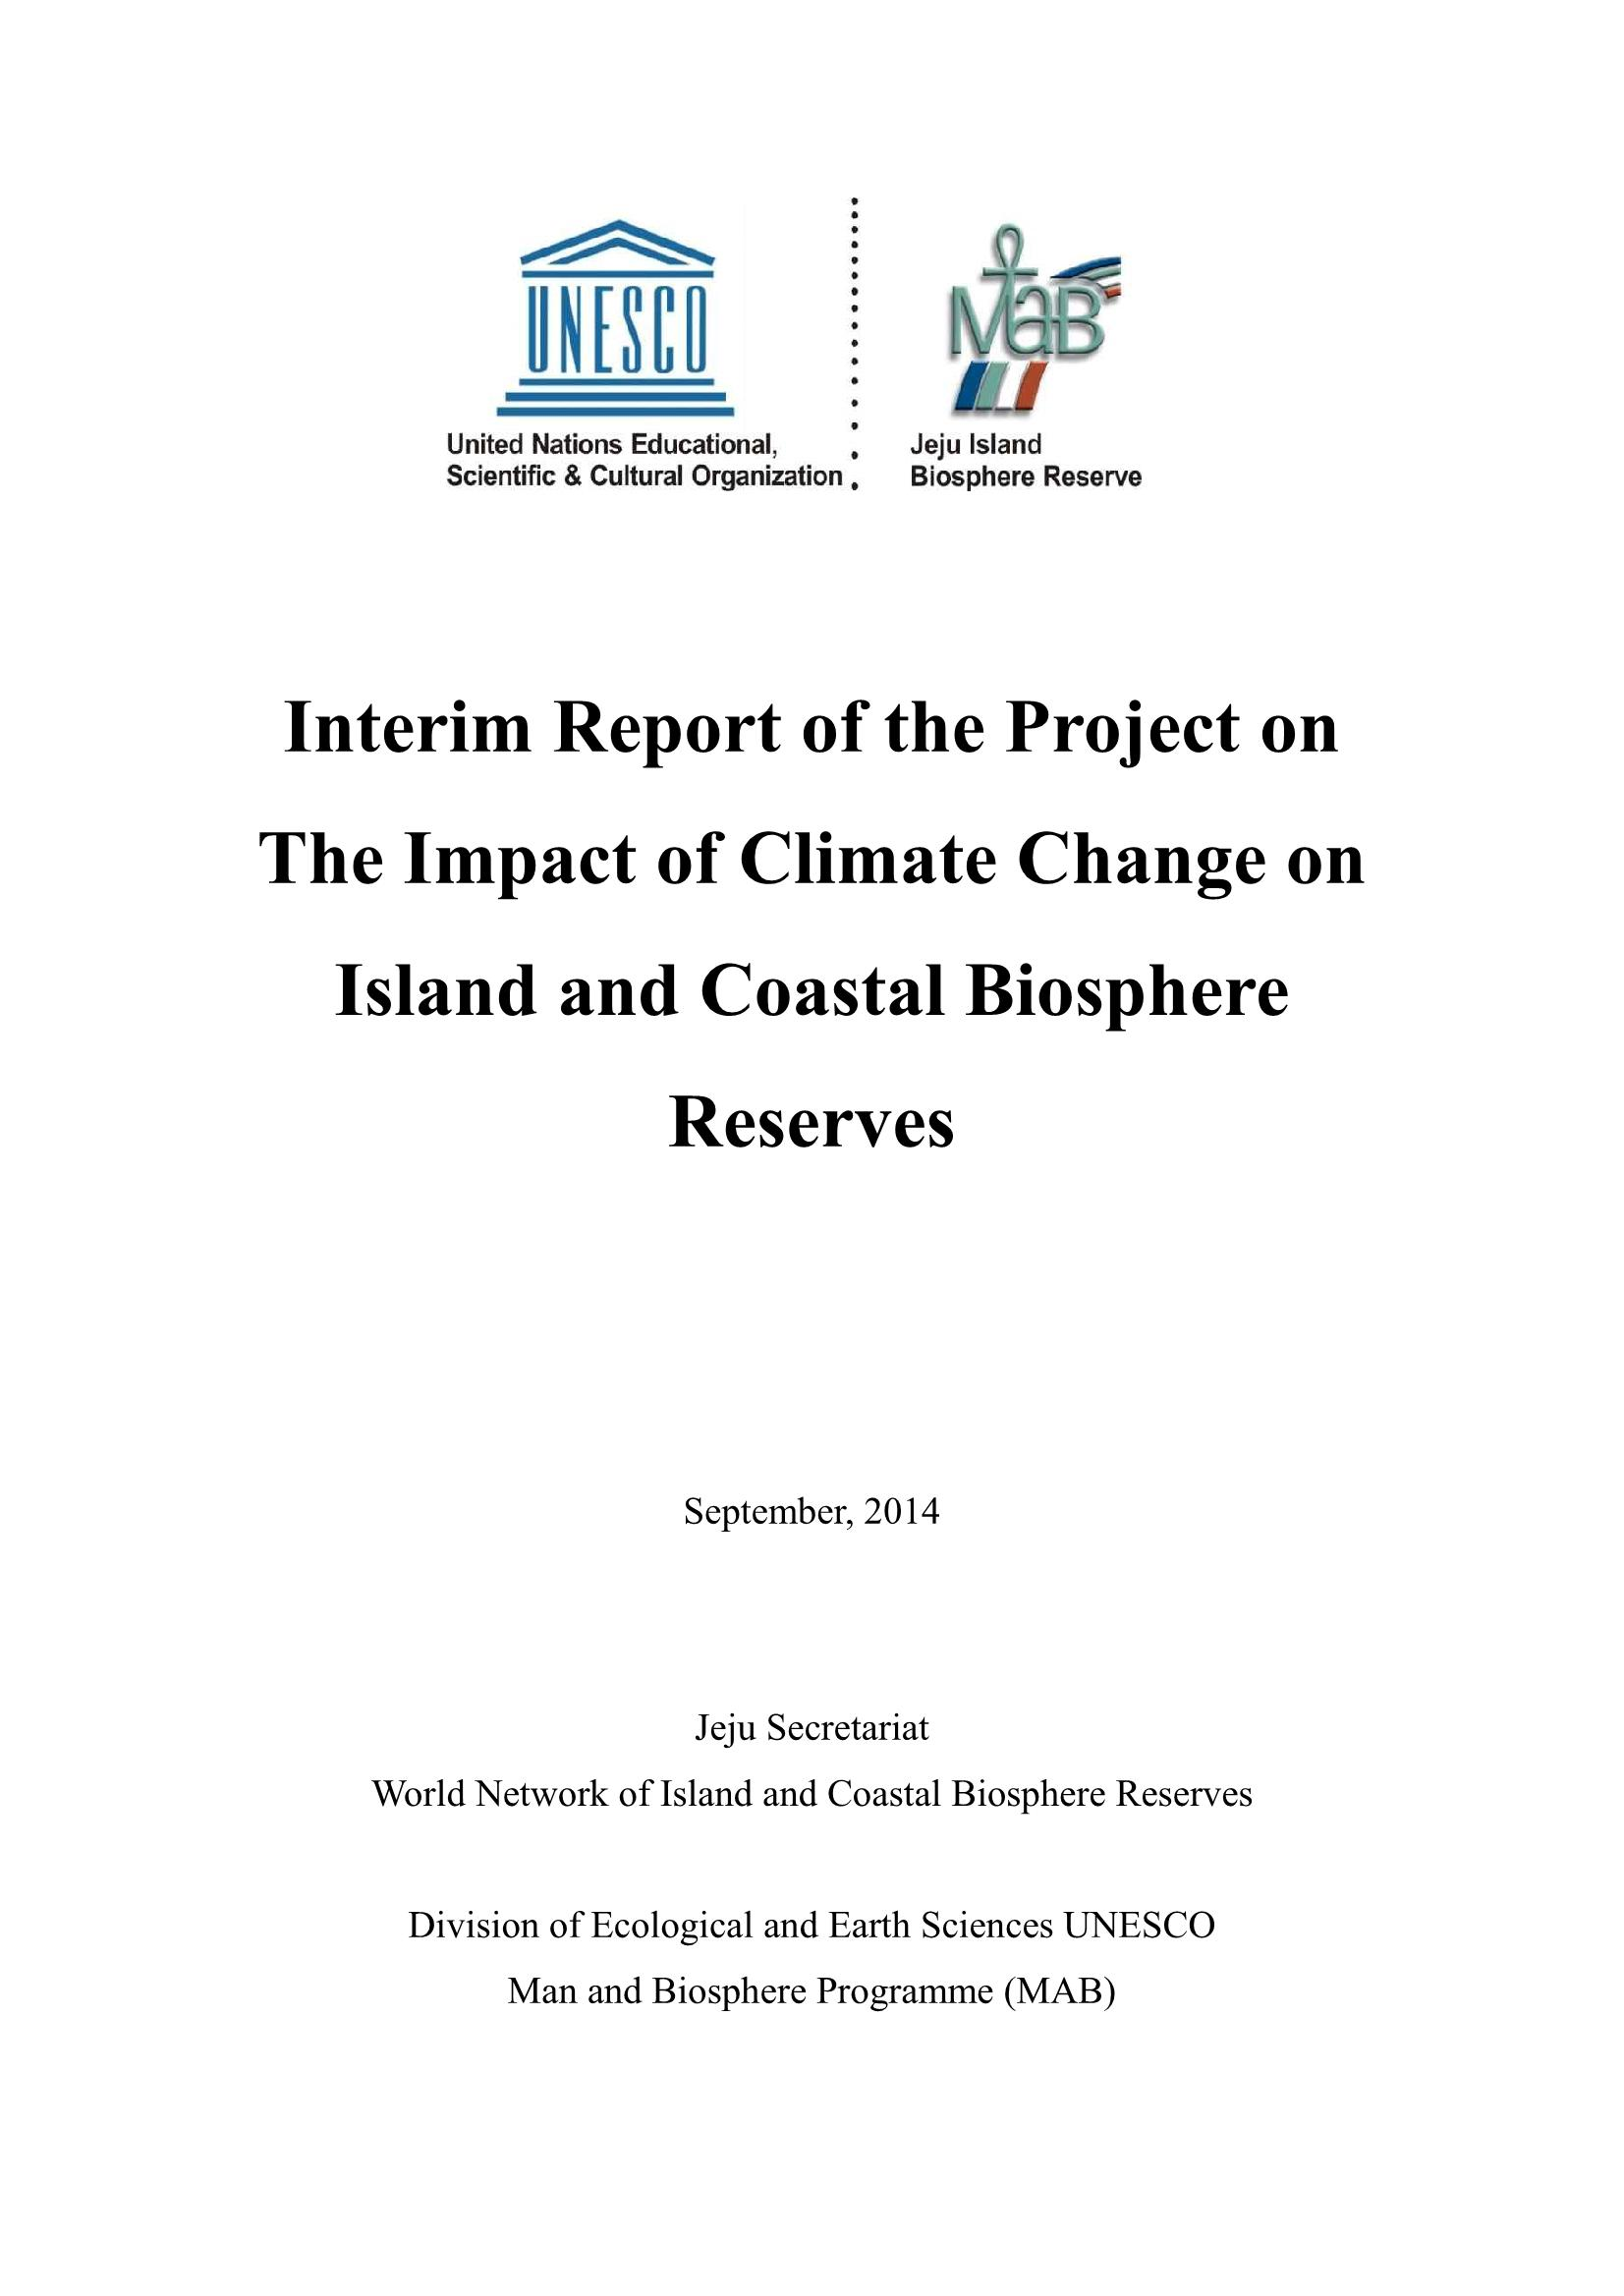 Interim Report of Joint Research Project